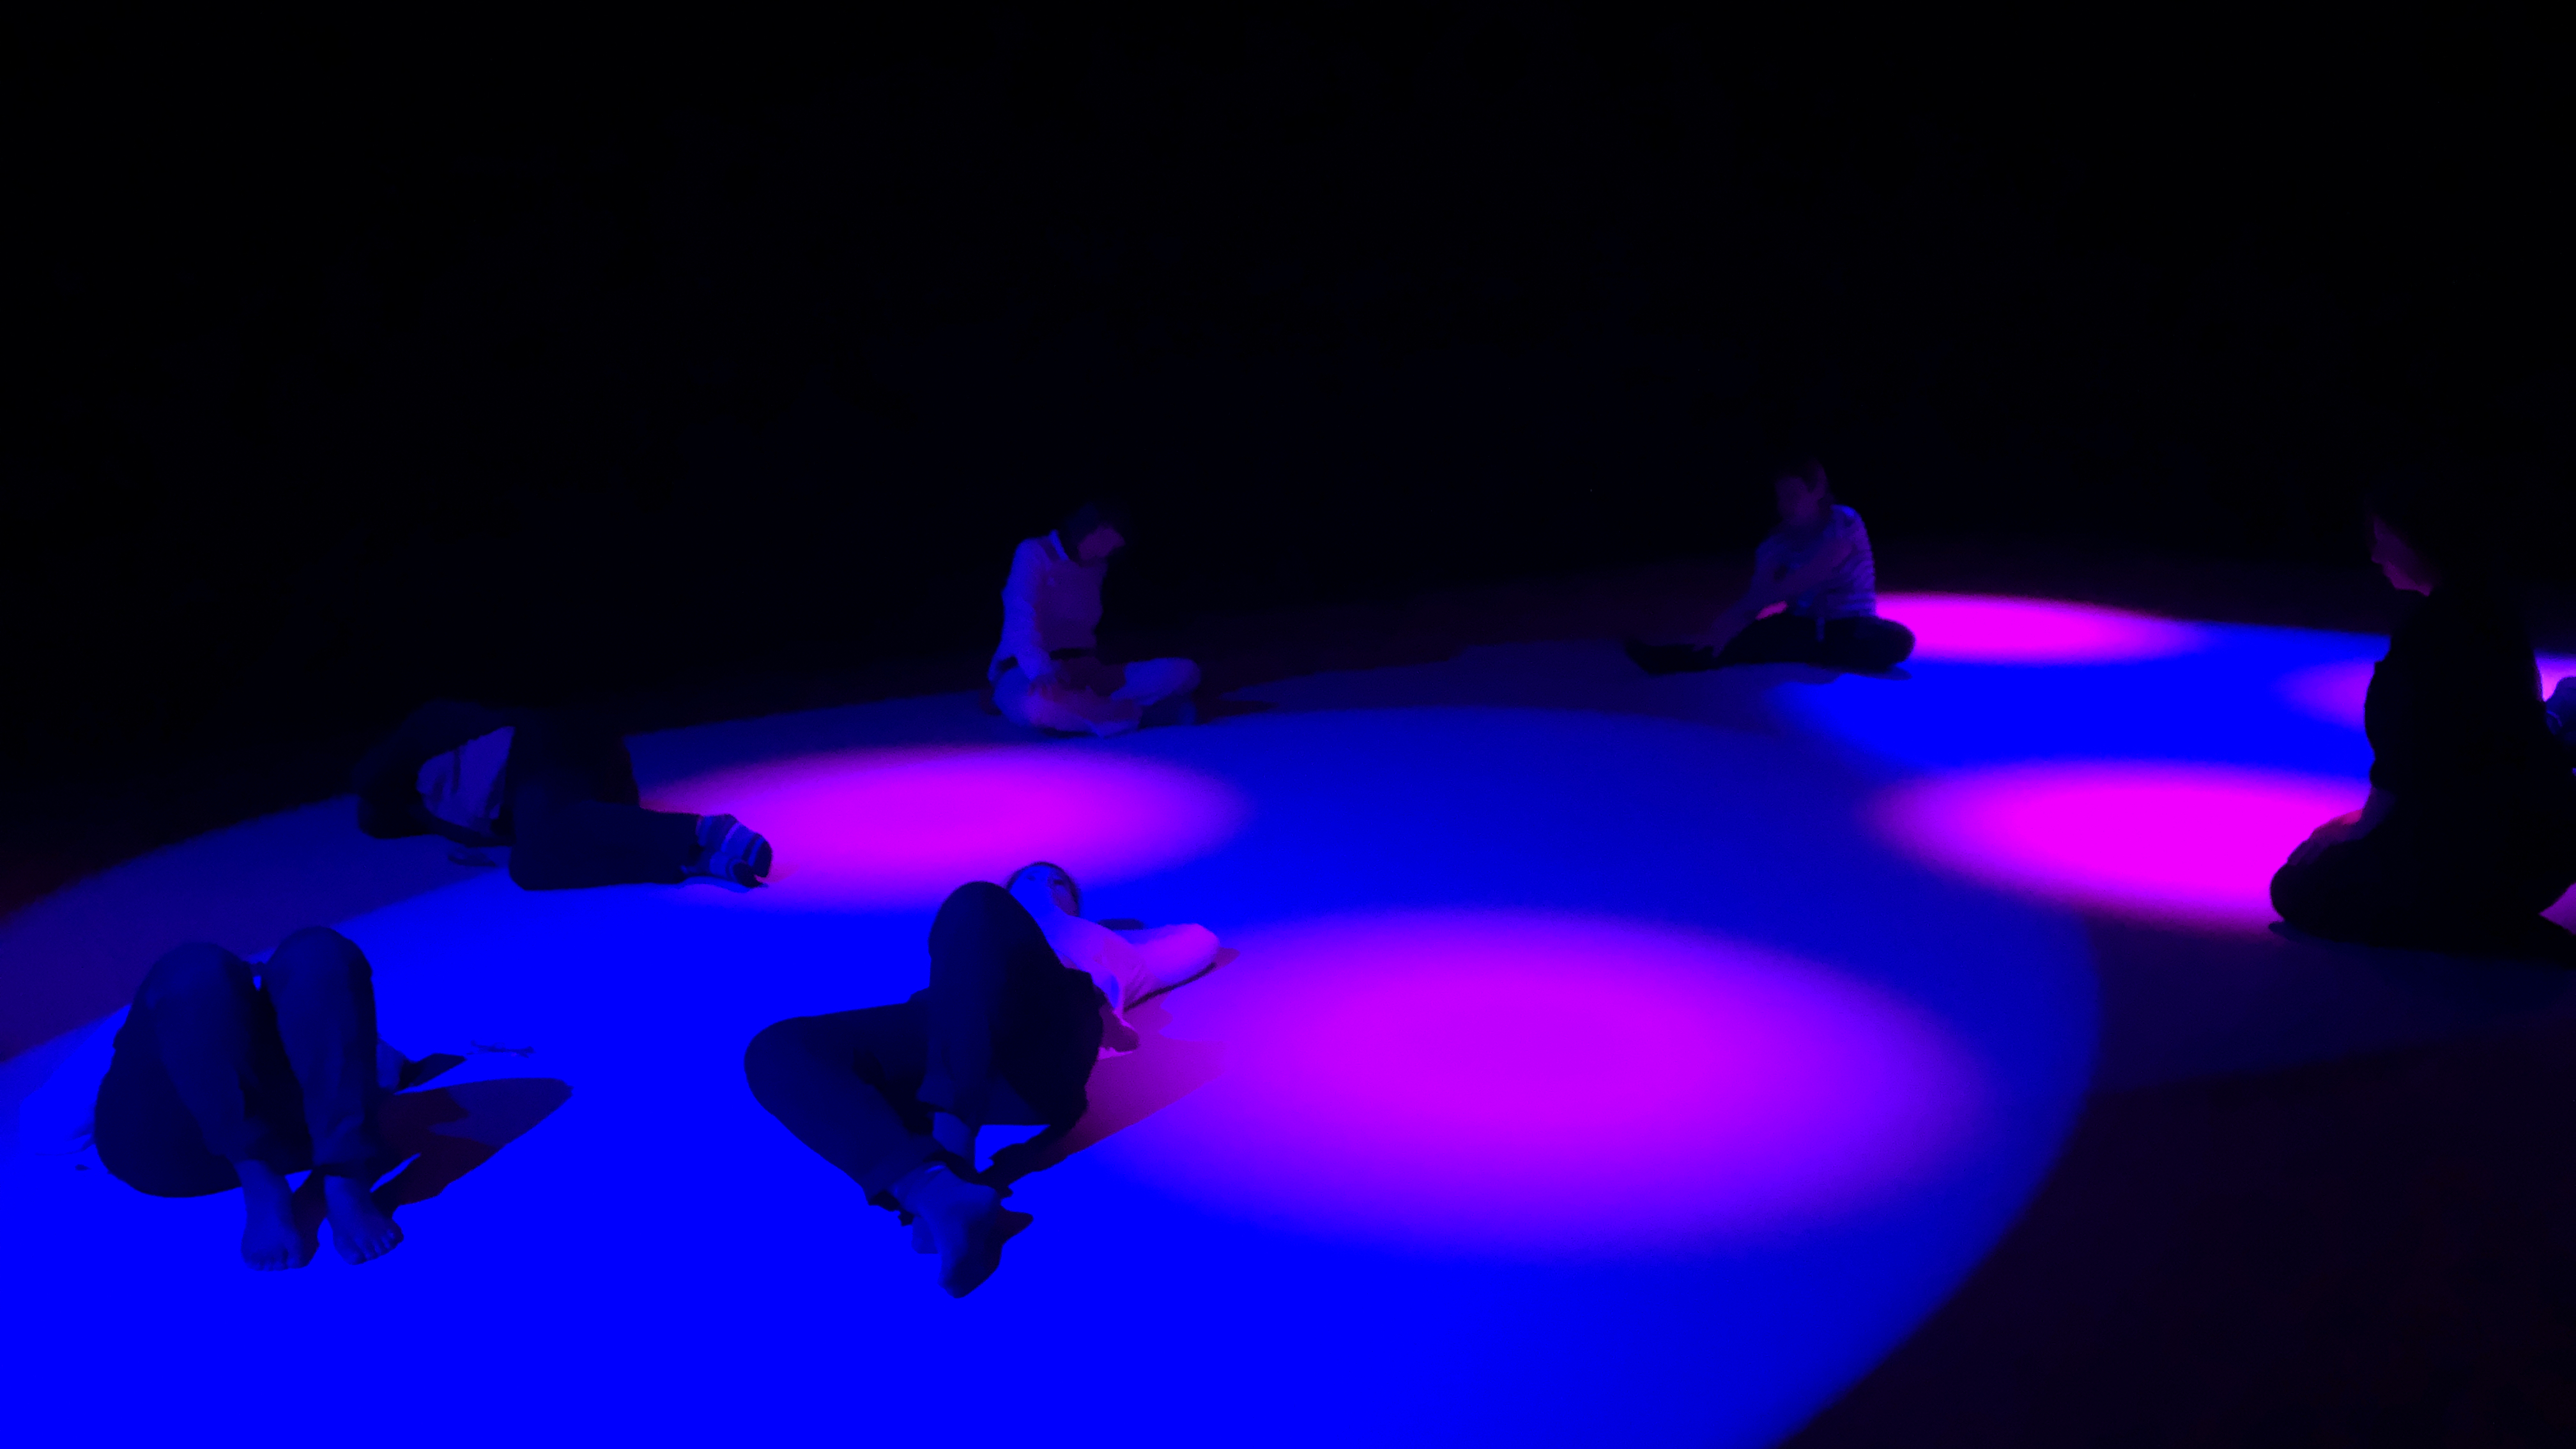 Stillness lab participants lie on the ground immersed in violet light with fuchsia spot lights.